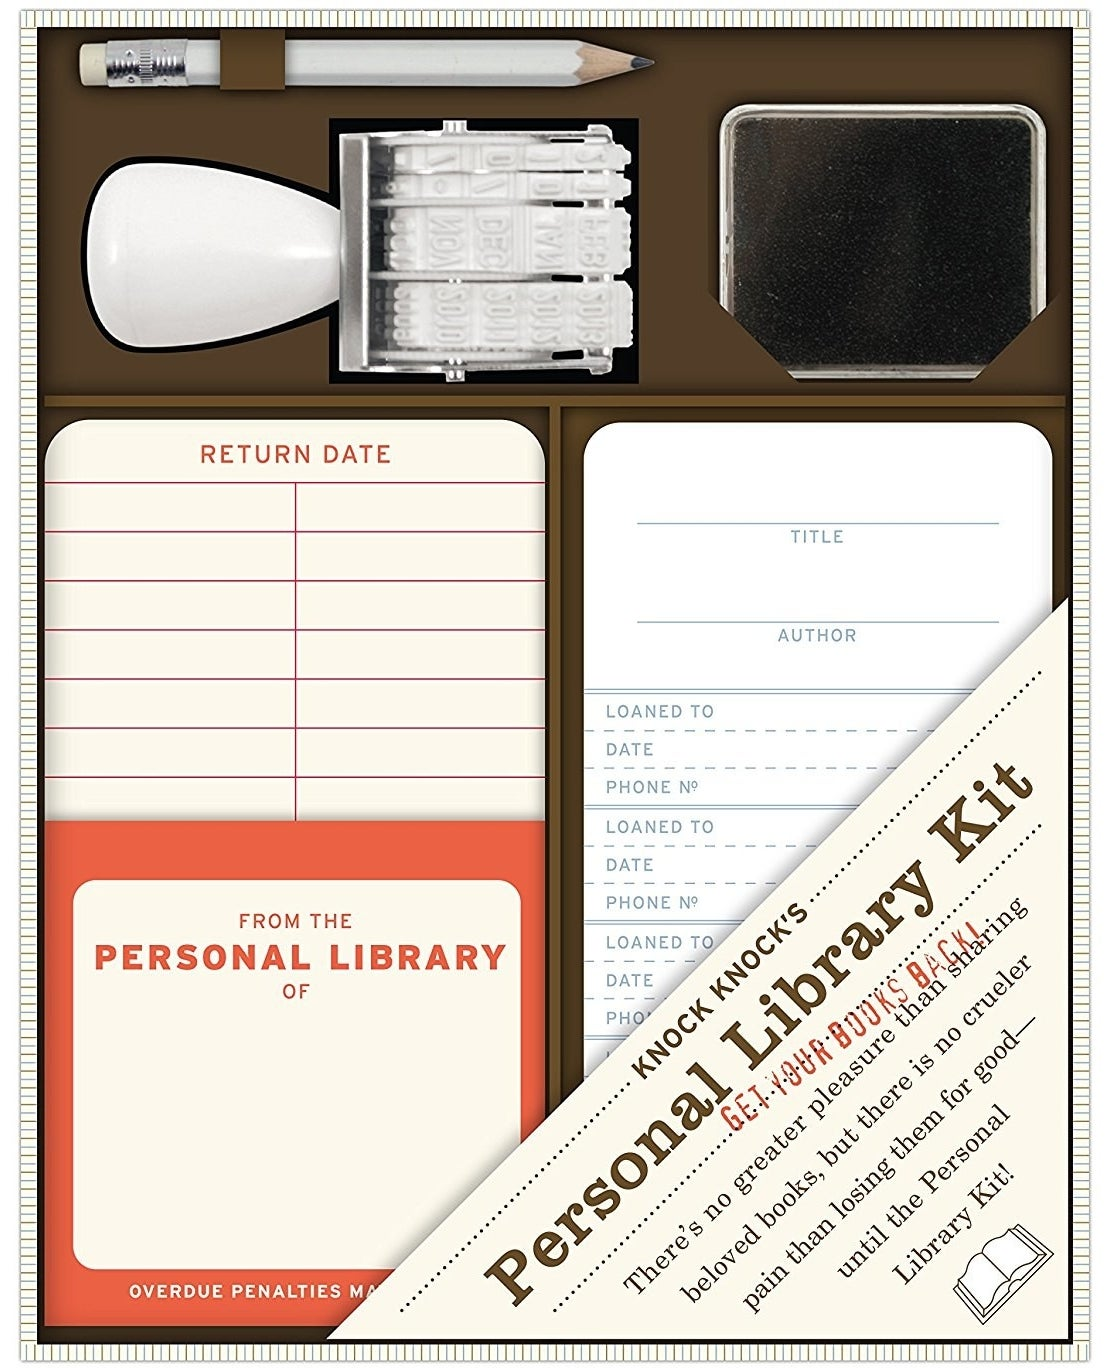 """This nifty kit will guilt all borrowers into actually returning borrowed, weathered copies of The Great Gatsby.Promising review: """"I'm always trying to find interesting gifts for my tween daughter that encourage reading and don't involve screens. This was a HUGE hit. We also bought one for her best friend, and they're both really enjoying it."""" —LizGet it from Amazon for $15.19."""